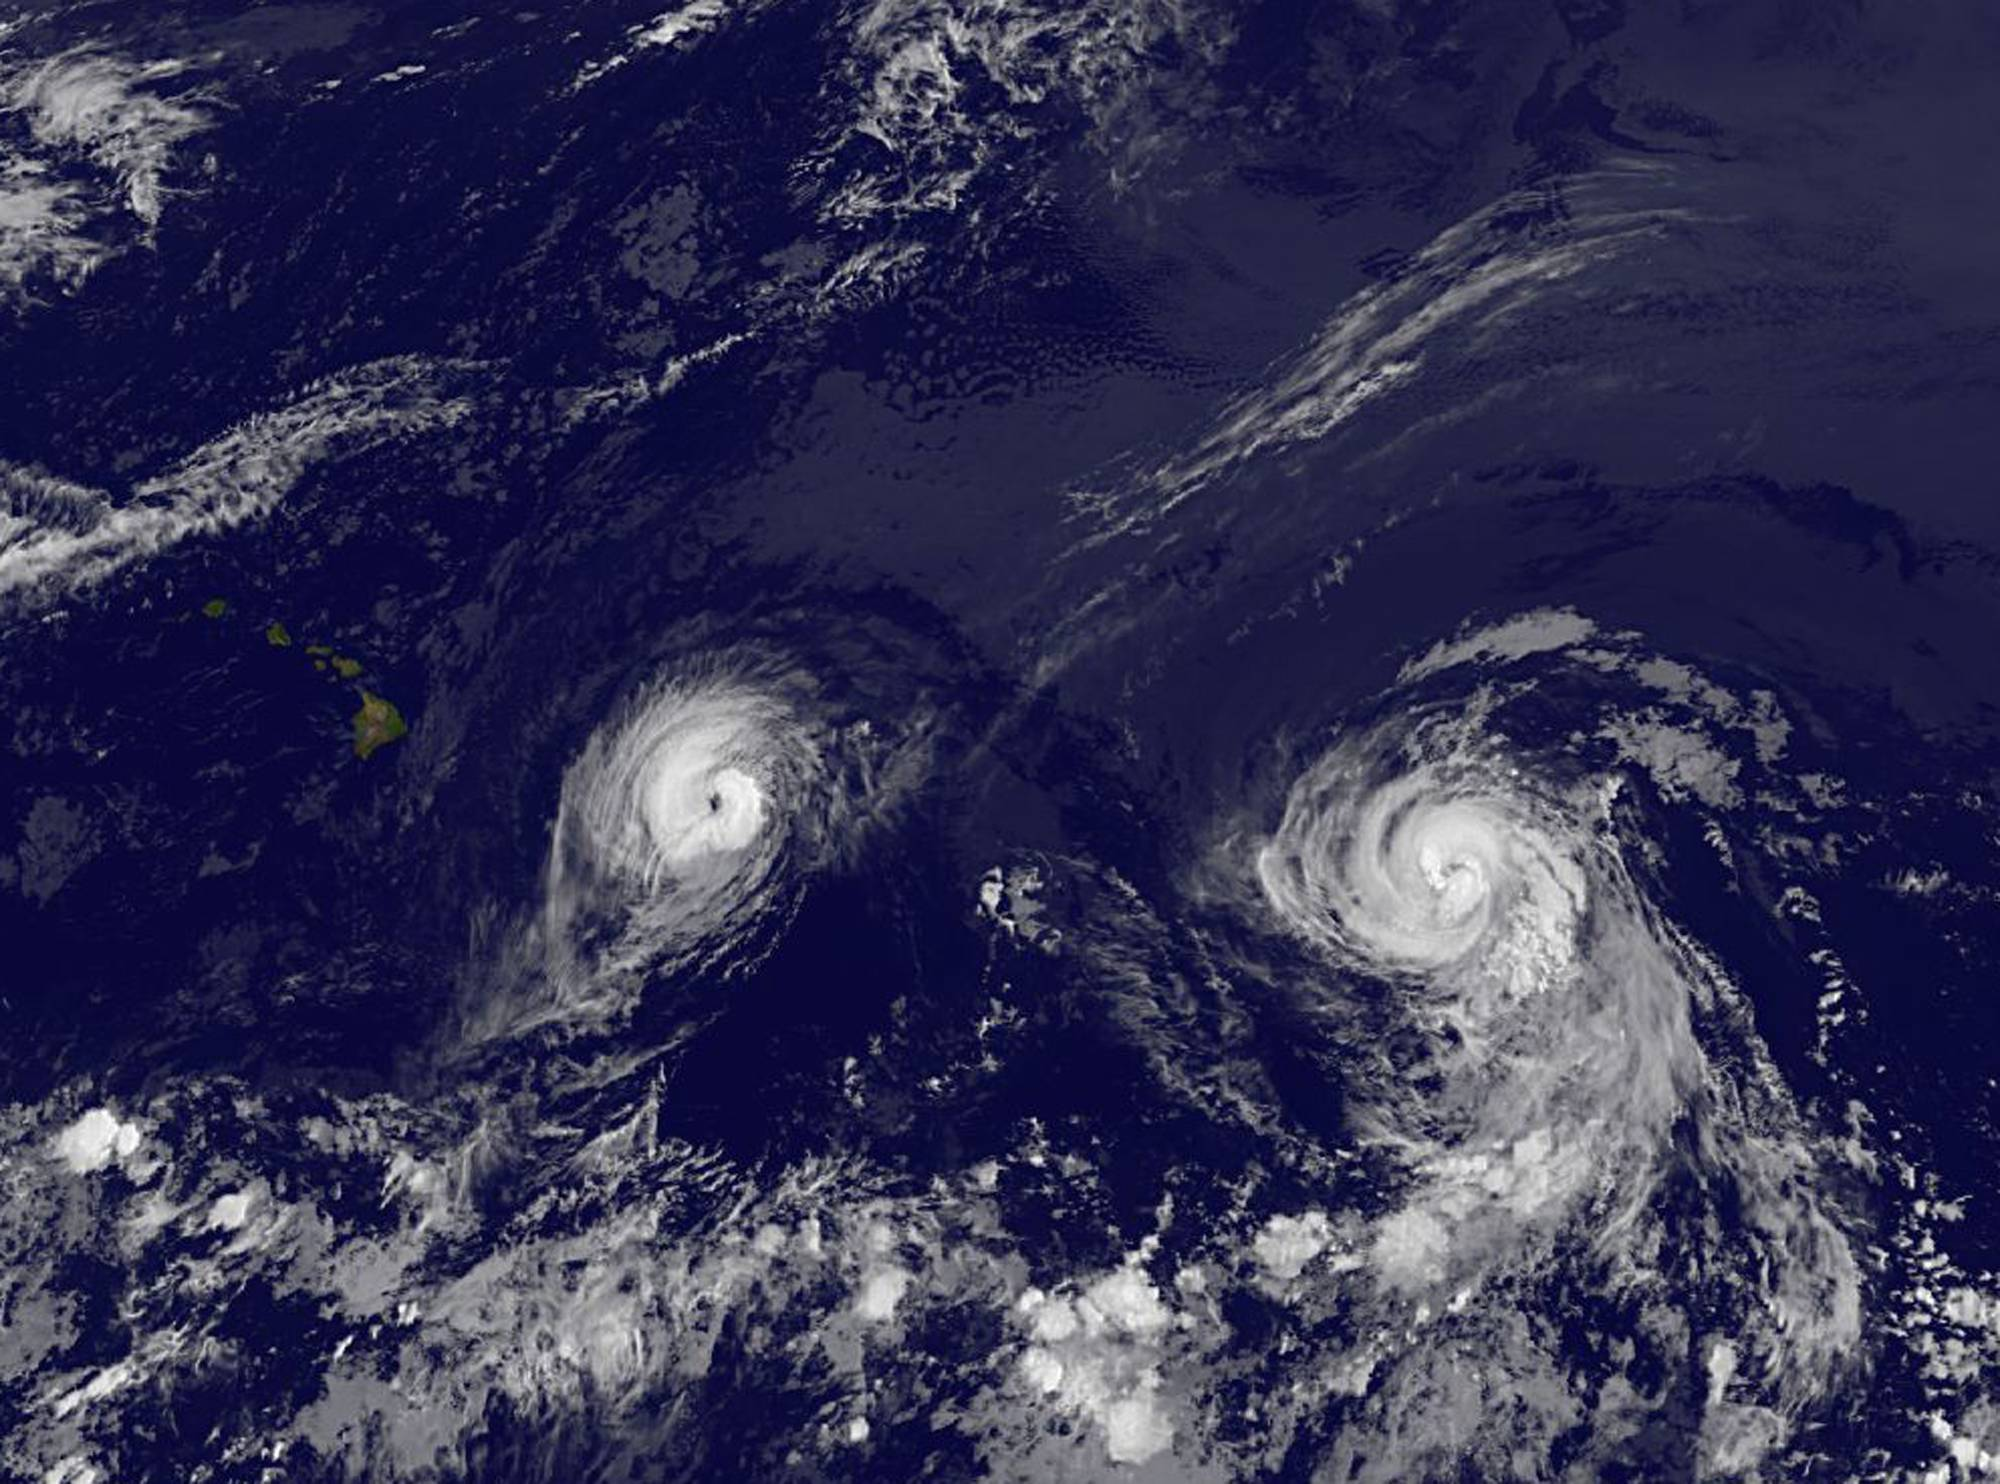 This image provided by NOAA taken Thursday Aug. 7, 2014 at 2 a.m. EDT shows Hurricane Iselle, left and Hurricane Julio. Iselle was supposed to weaken as it slowly trudged west across the Pacific. It didn't -- and now Hawaii is poised to take its first direct hurricane hit in 22 years. The center of Hurricane Iselle is expected to pass very near or over the Big Island Thursday night and just south of the smaller islands Friday. Some weakening is forecast during the next 48 hours however Iselle is still expected to be near hurricane strength as it impacts the Big Island.